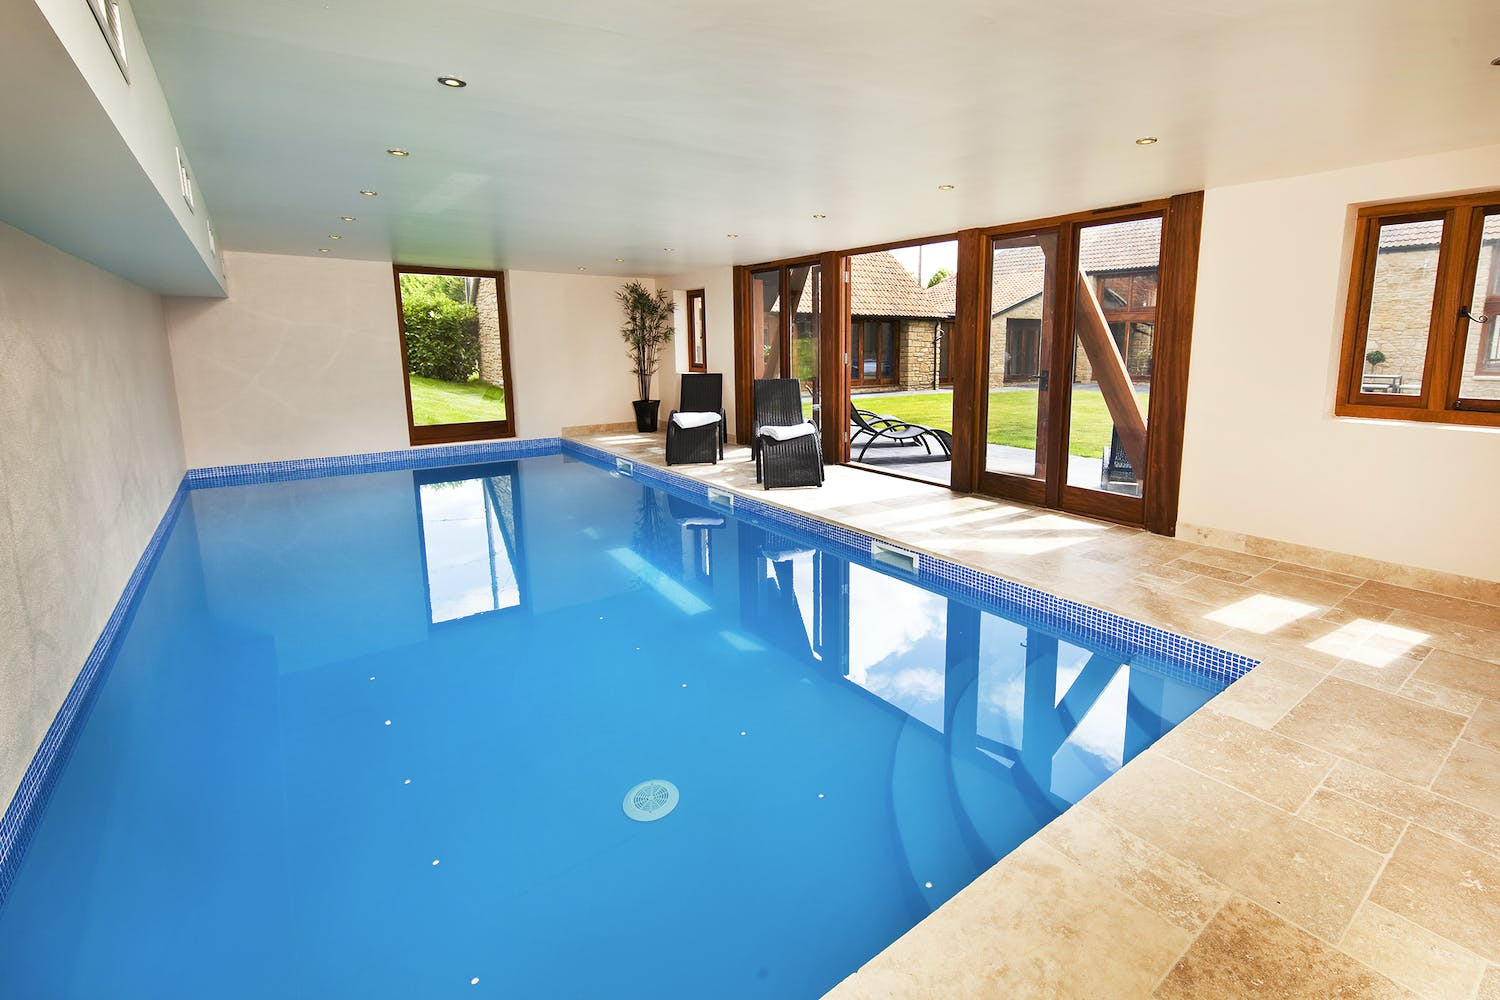 Gallery coat barn somerset sleeps 12 - Holiday homes with indoor swimming pool ...